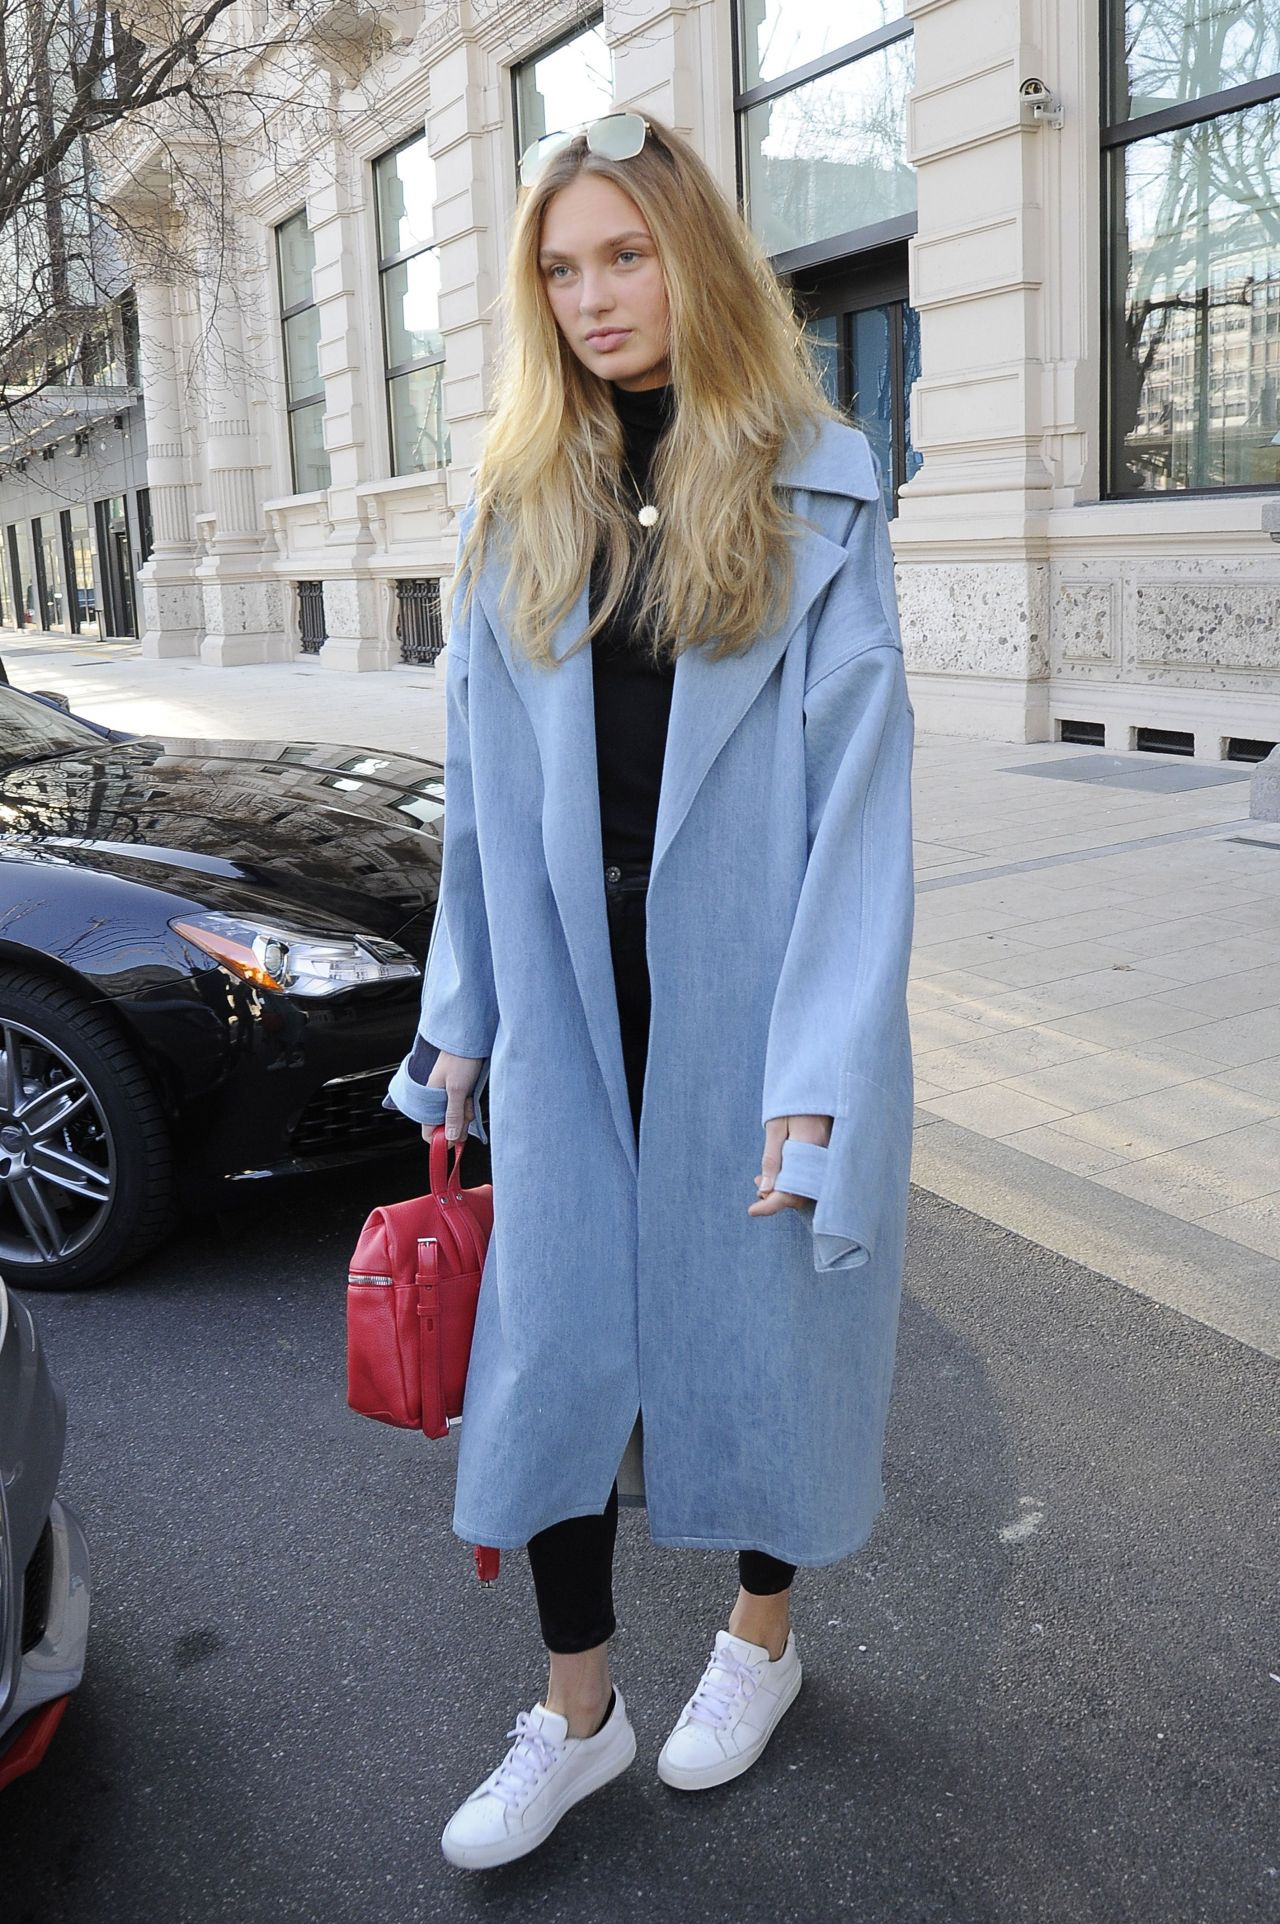 11/08/· See the latest street style and street style trends from across the world on Vogue. Fashion week street style and fashion trends on tenbadownload.ga